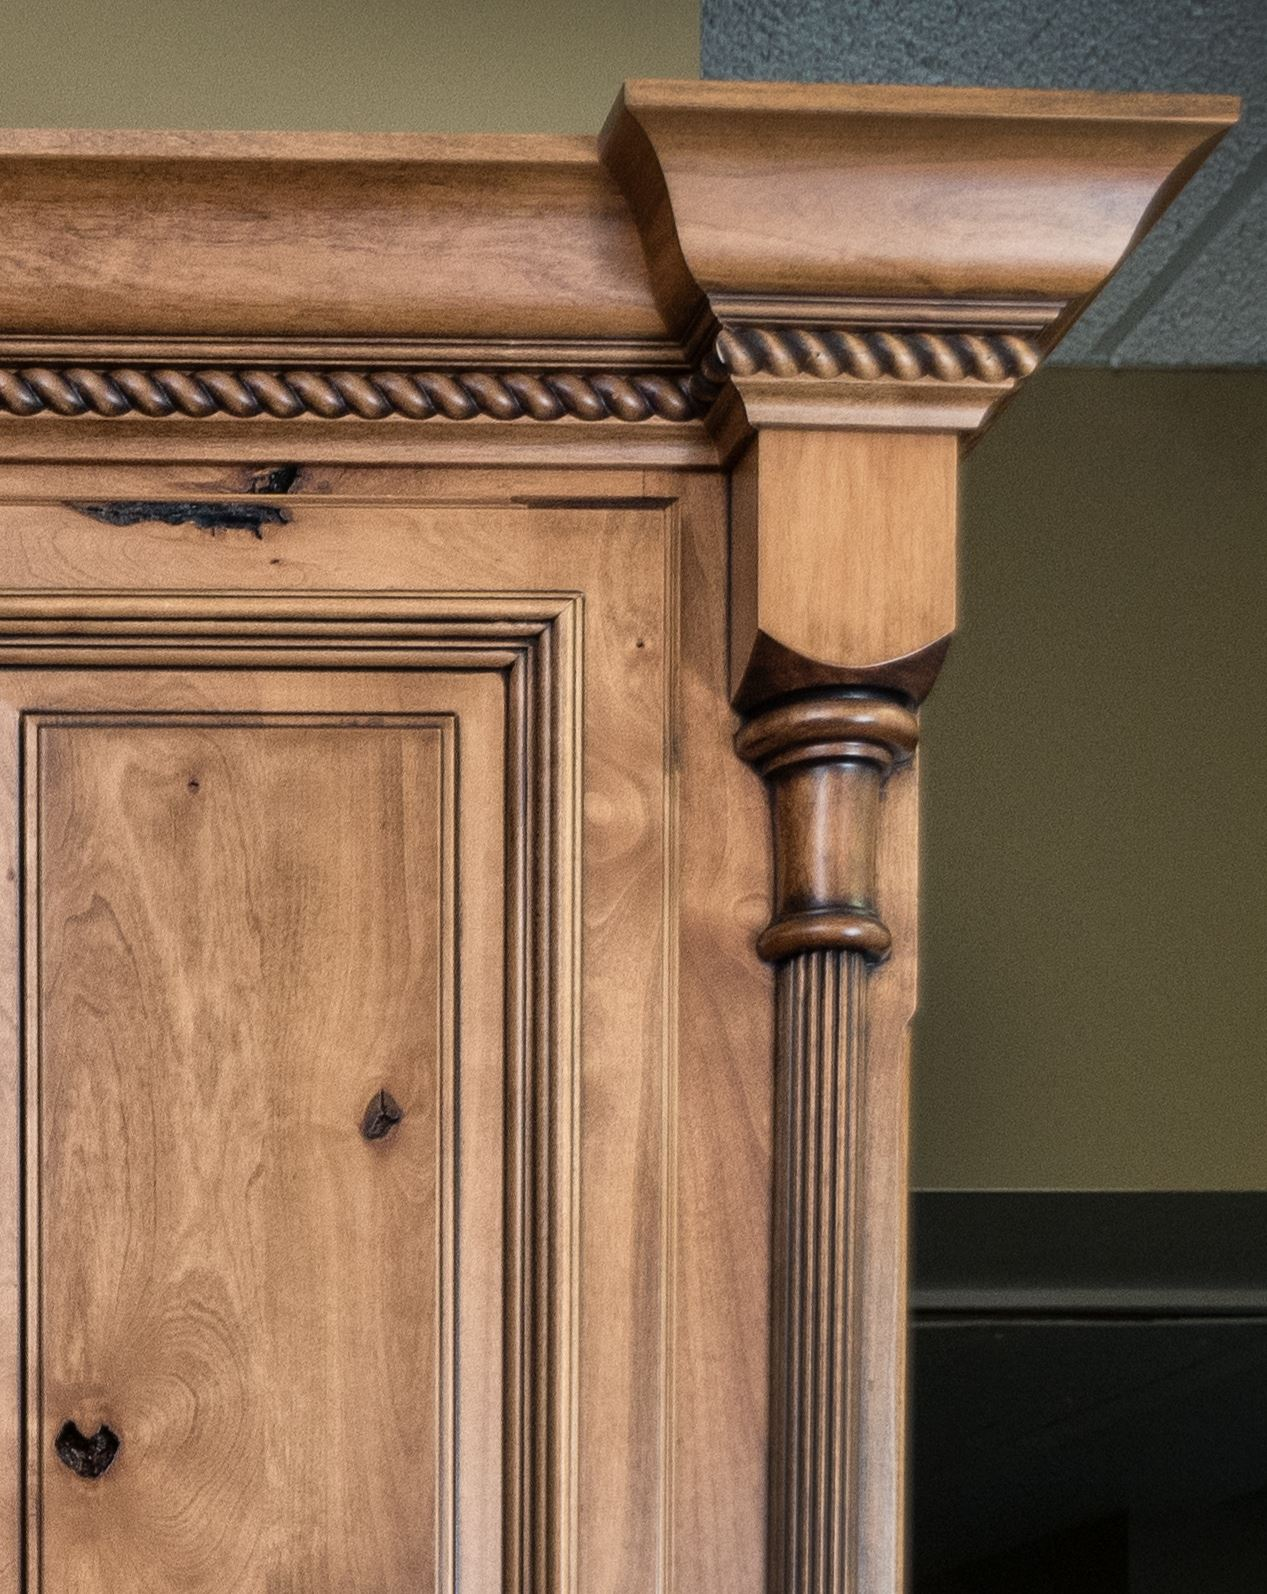 Design Elements Cabinets Custom Wood Products Handcrafted Cabinets